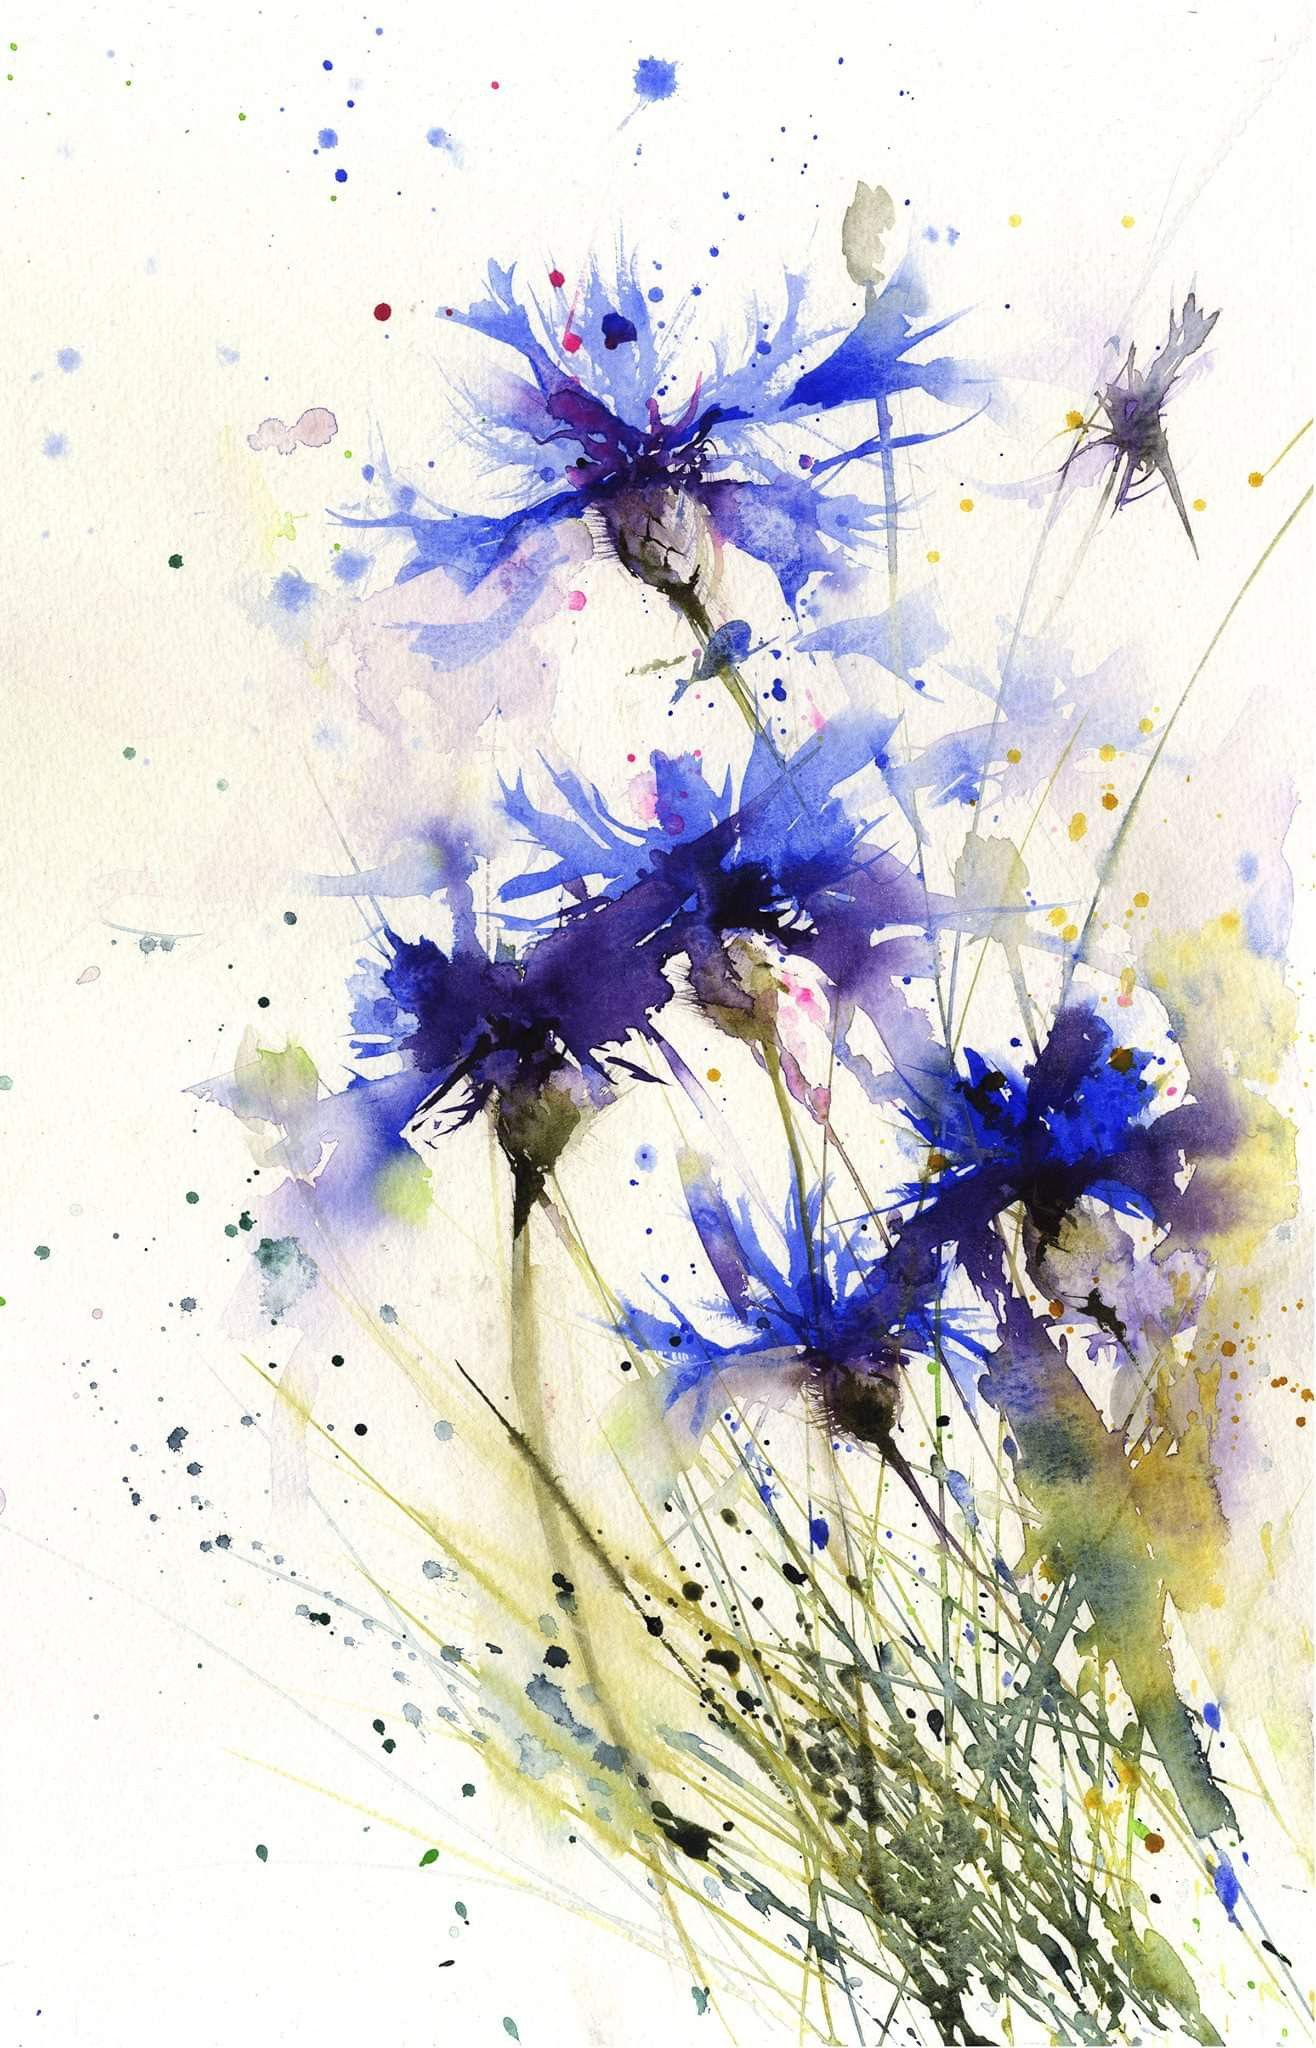 Pin By Stefania On Tattoo Ideas Watercolor Flowers Paintings Flower Painting Watercolor Flowers